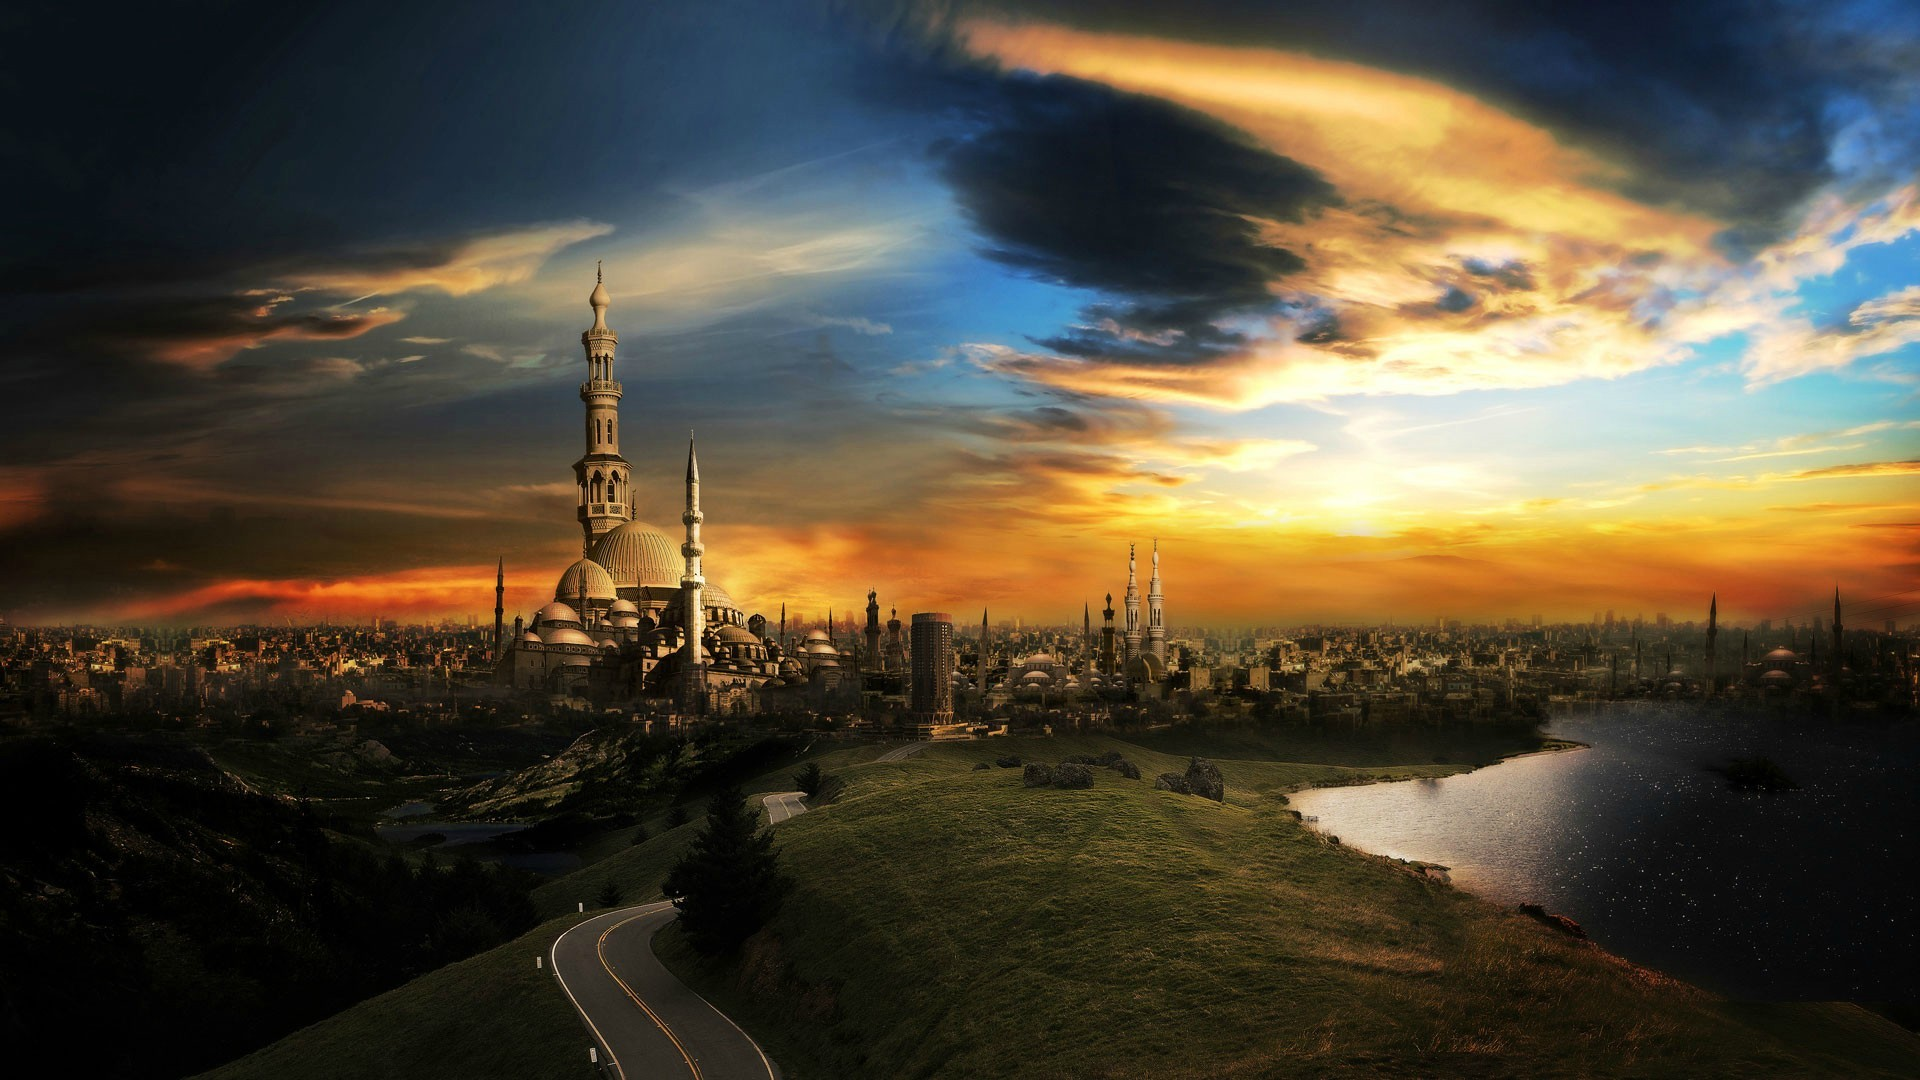 1080p Pc Wallpapers Hd Desktop Wallpapers Cool Images - City Of Thousand Minarets - HD Wallpaper